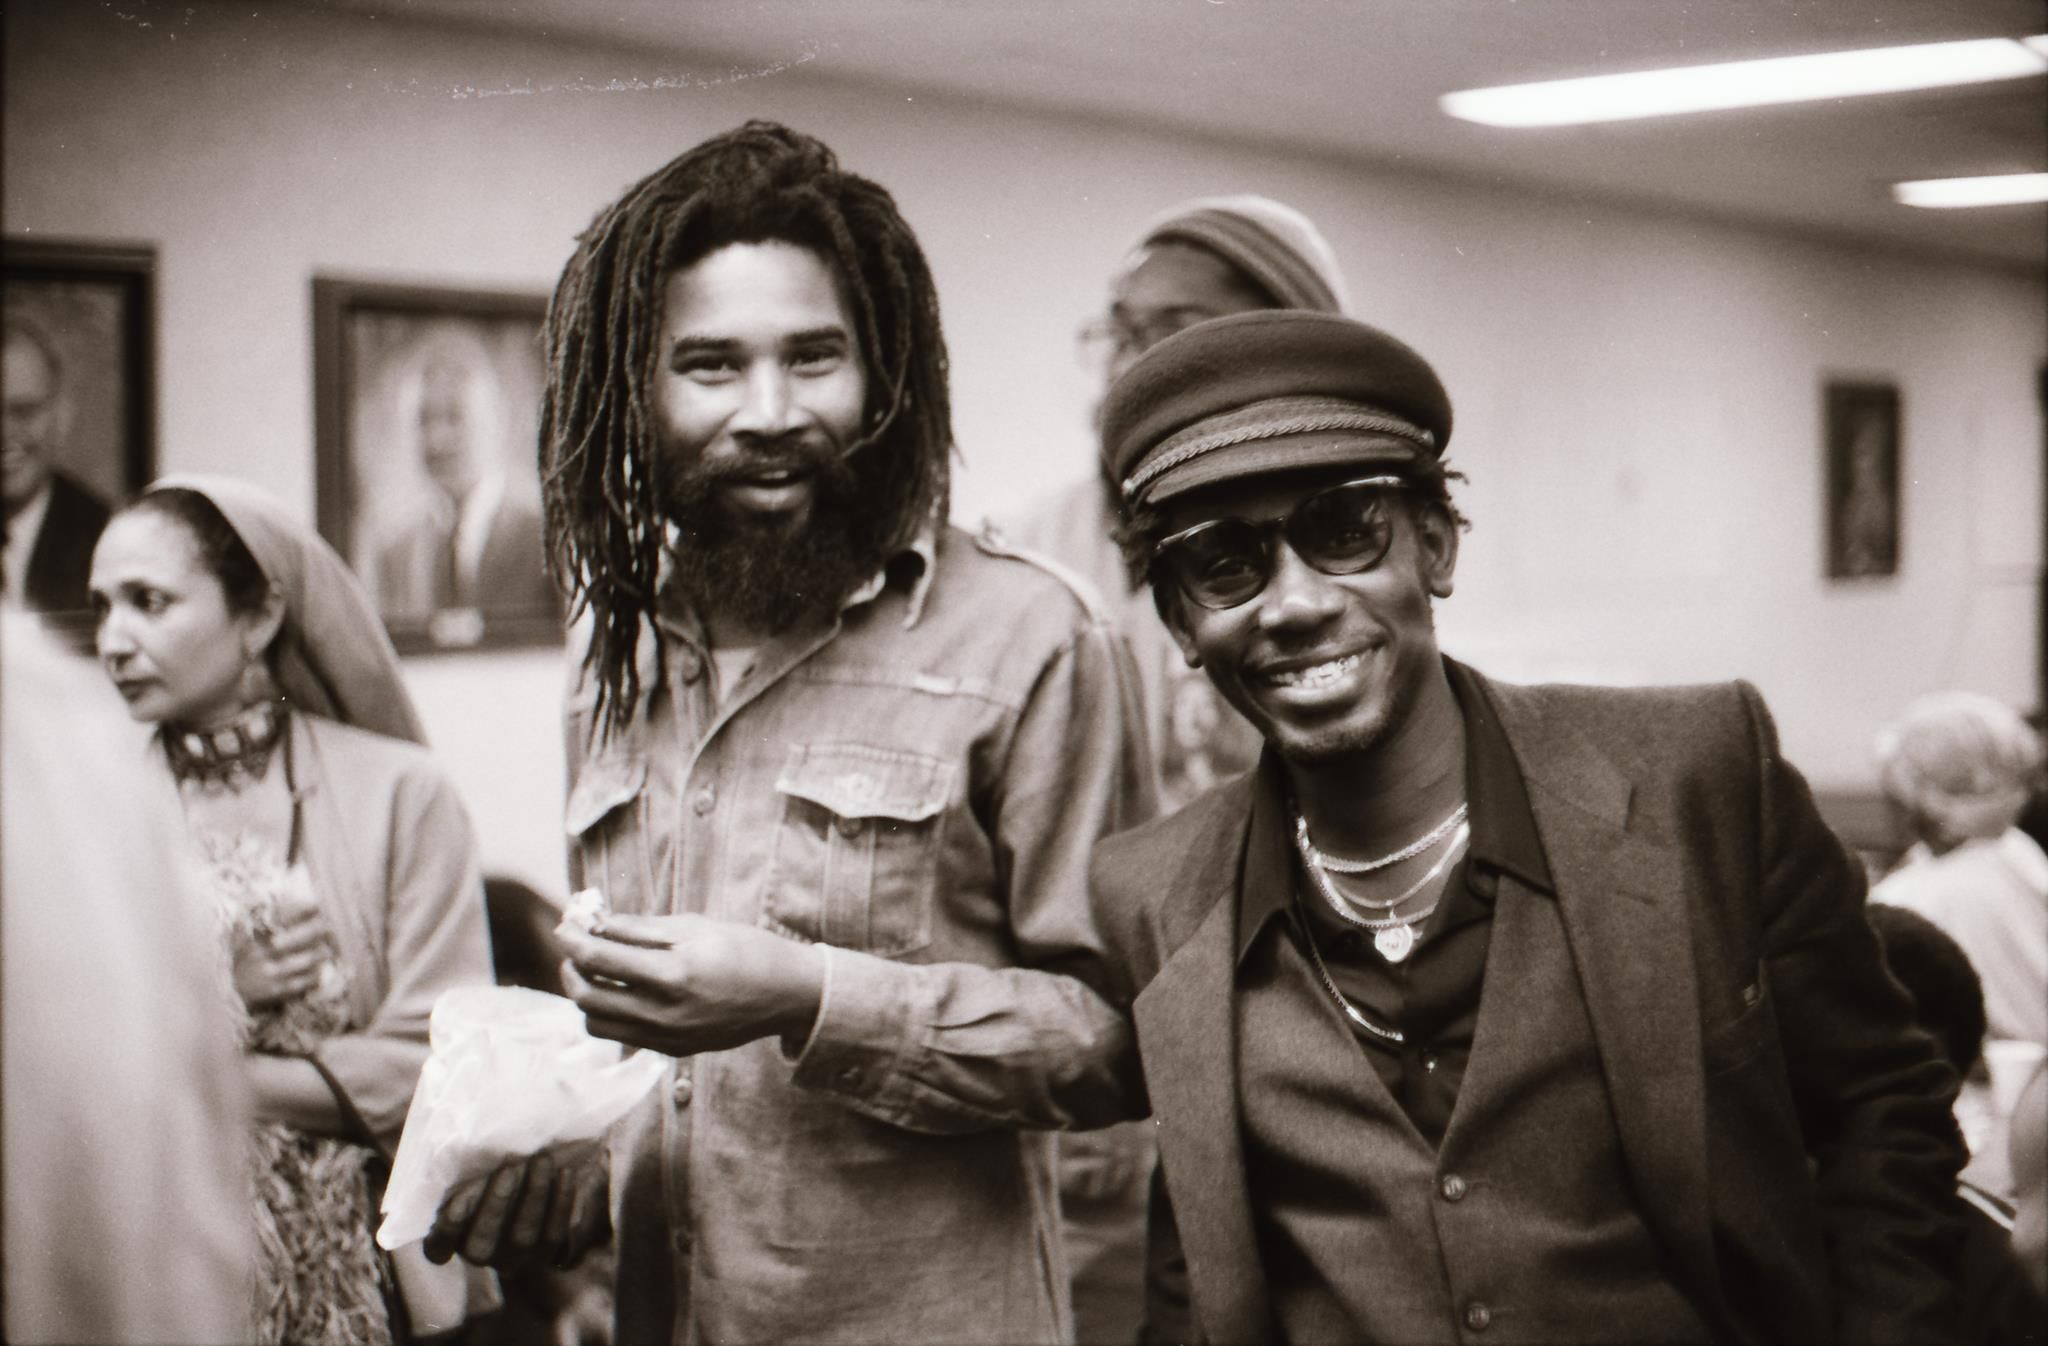 Norman Grant of THE TWINKLE BROTHERS with ERROL BROWN, '82 © Lindsay Oliver Donald